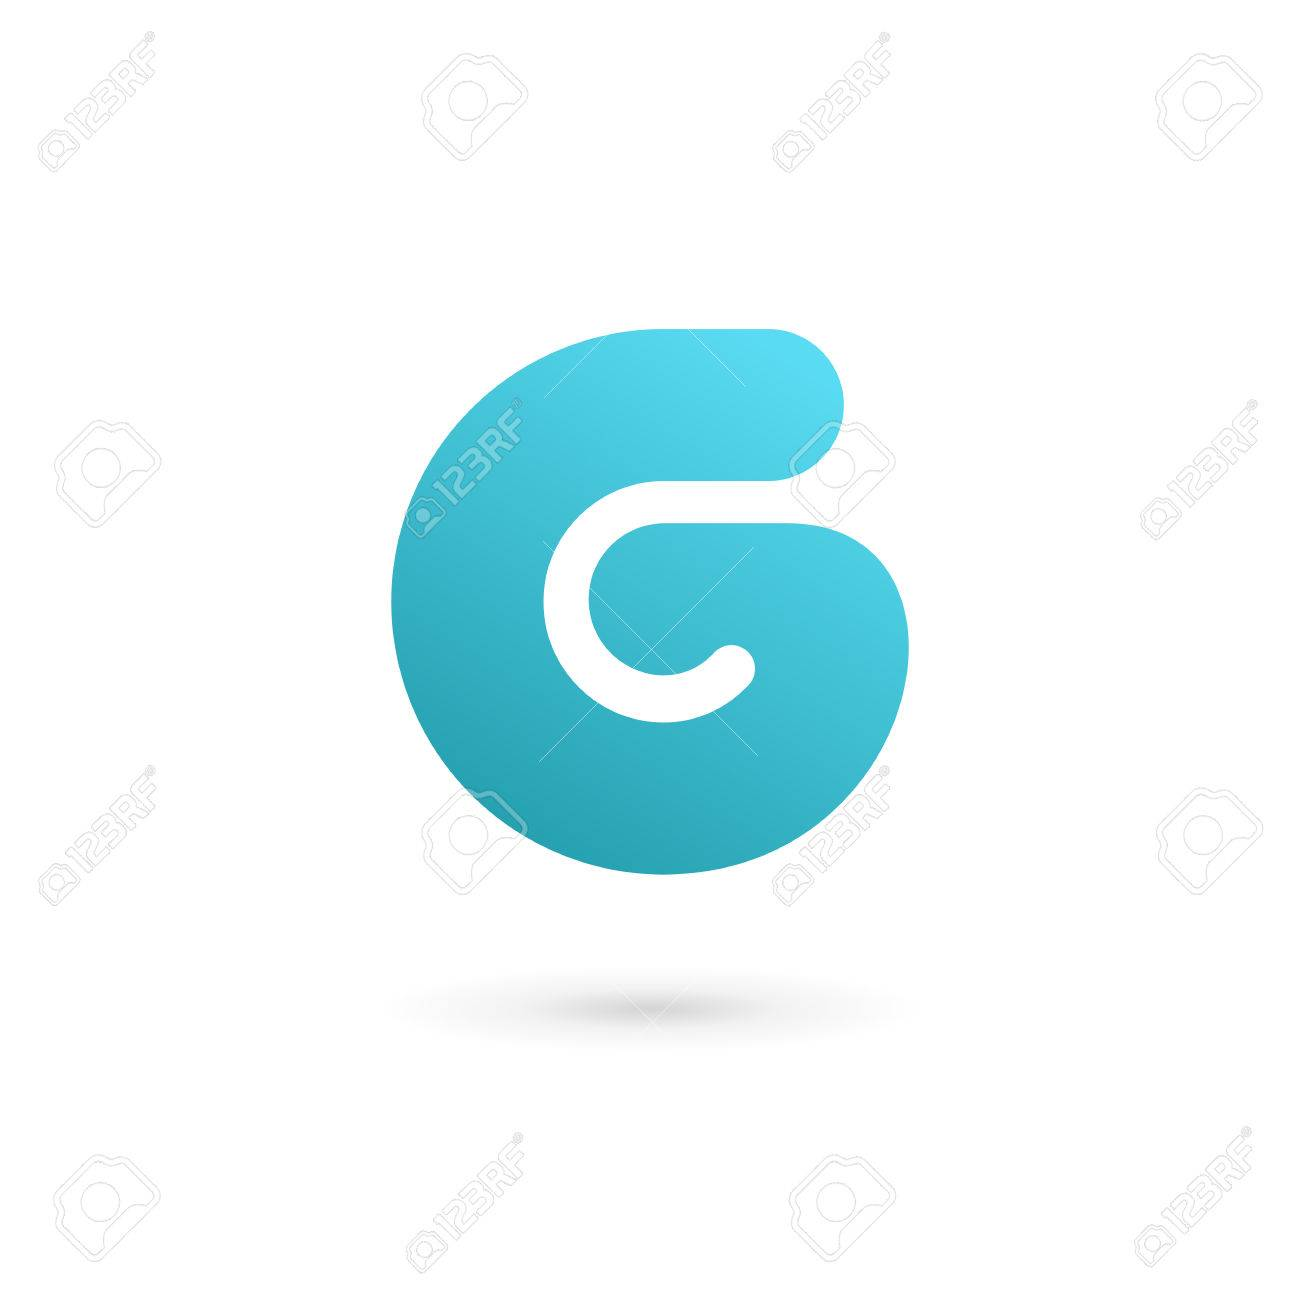 letter g number 6 icon design template elements royalty free